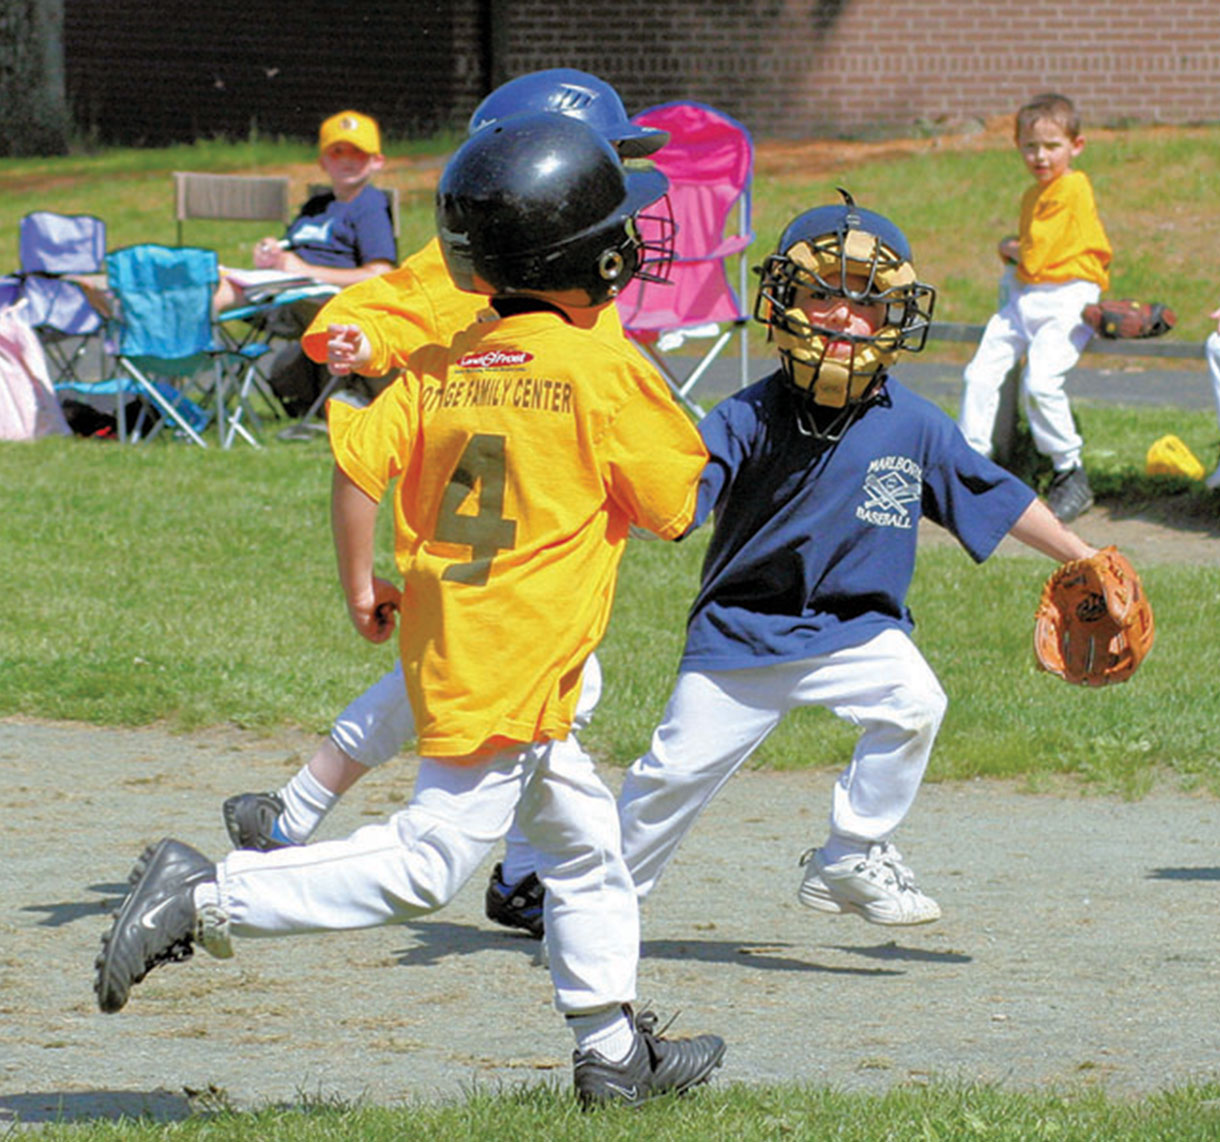 Youth Sports Initiative